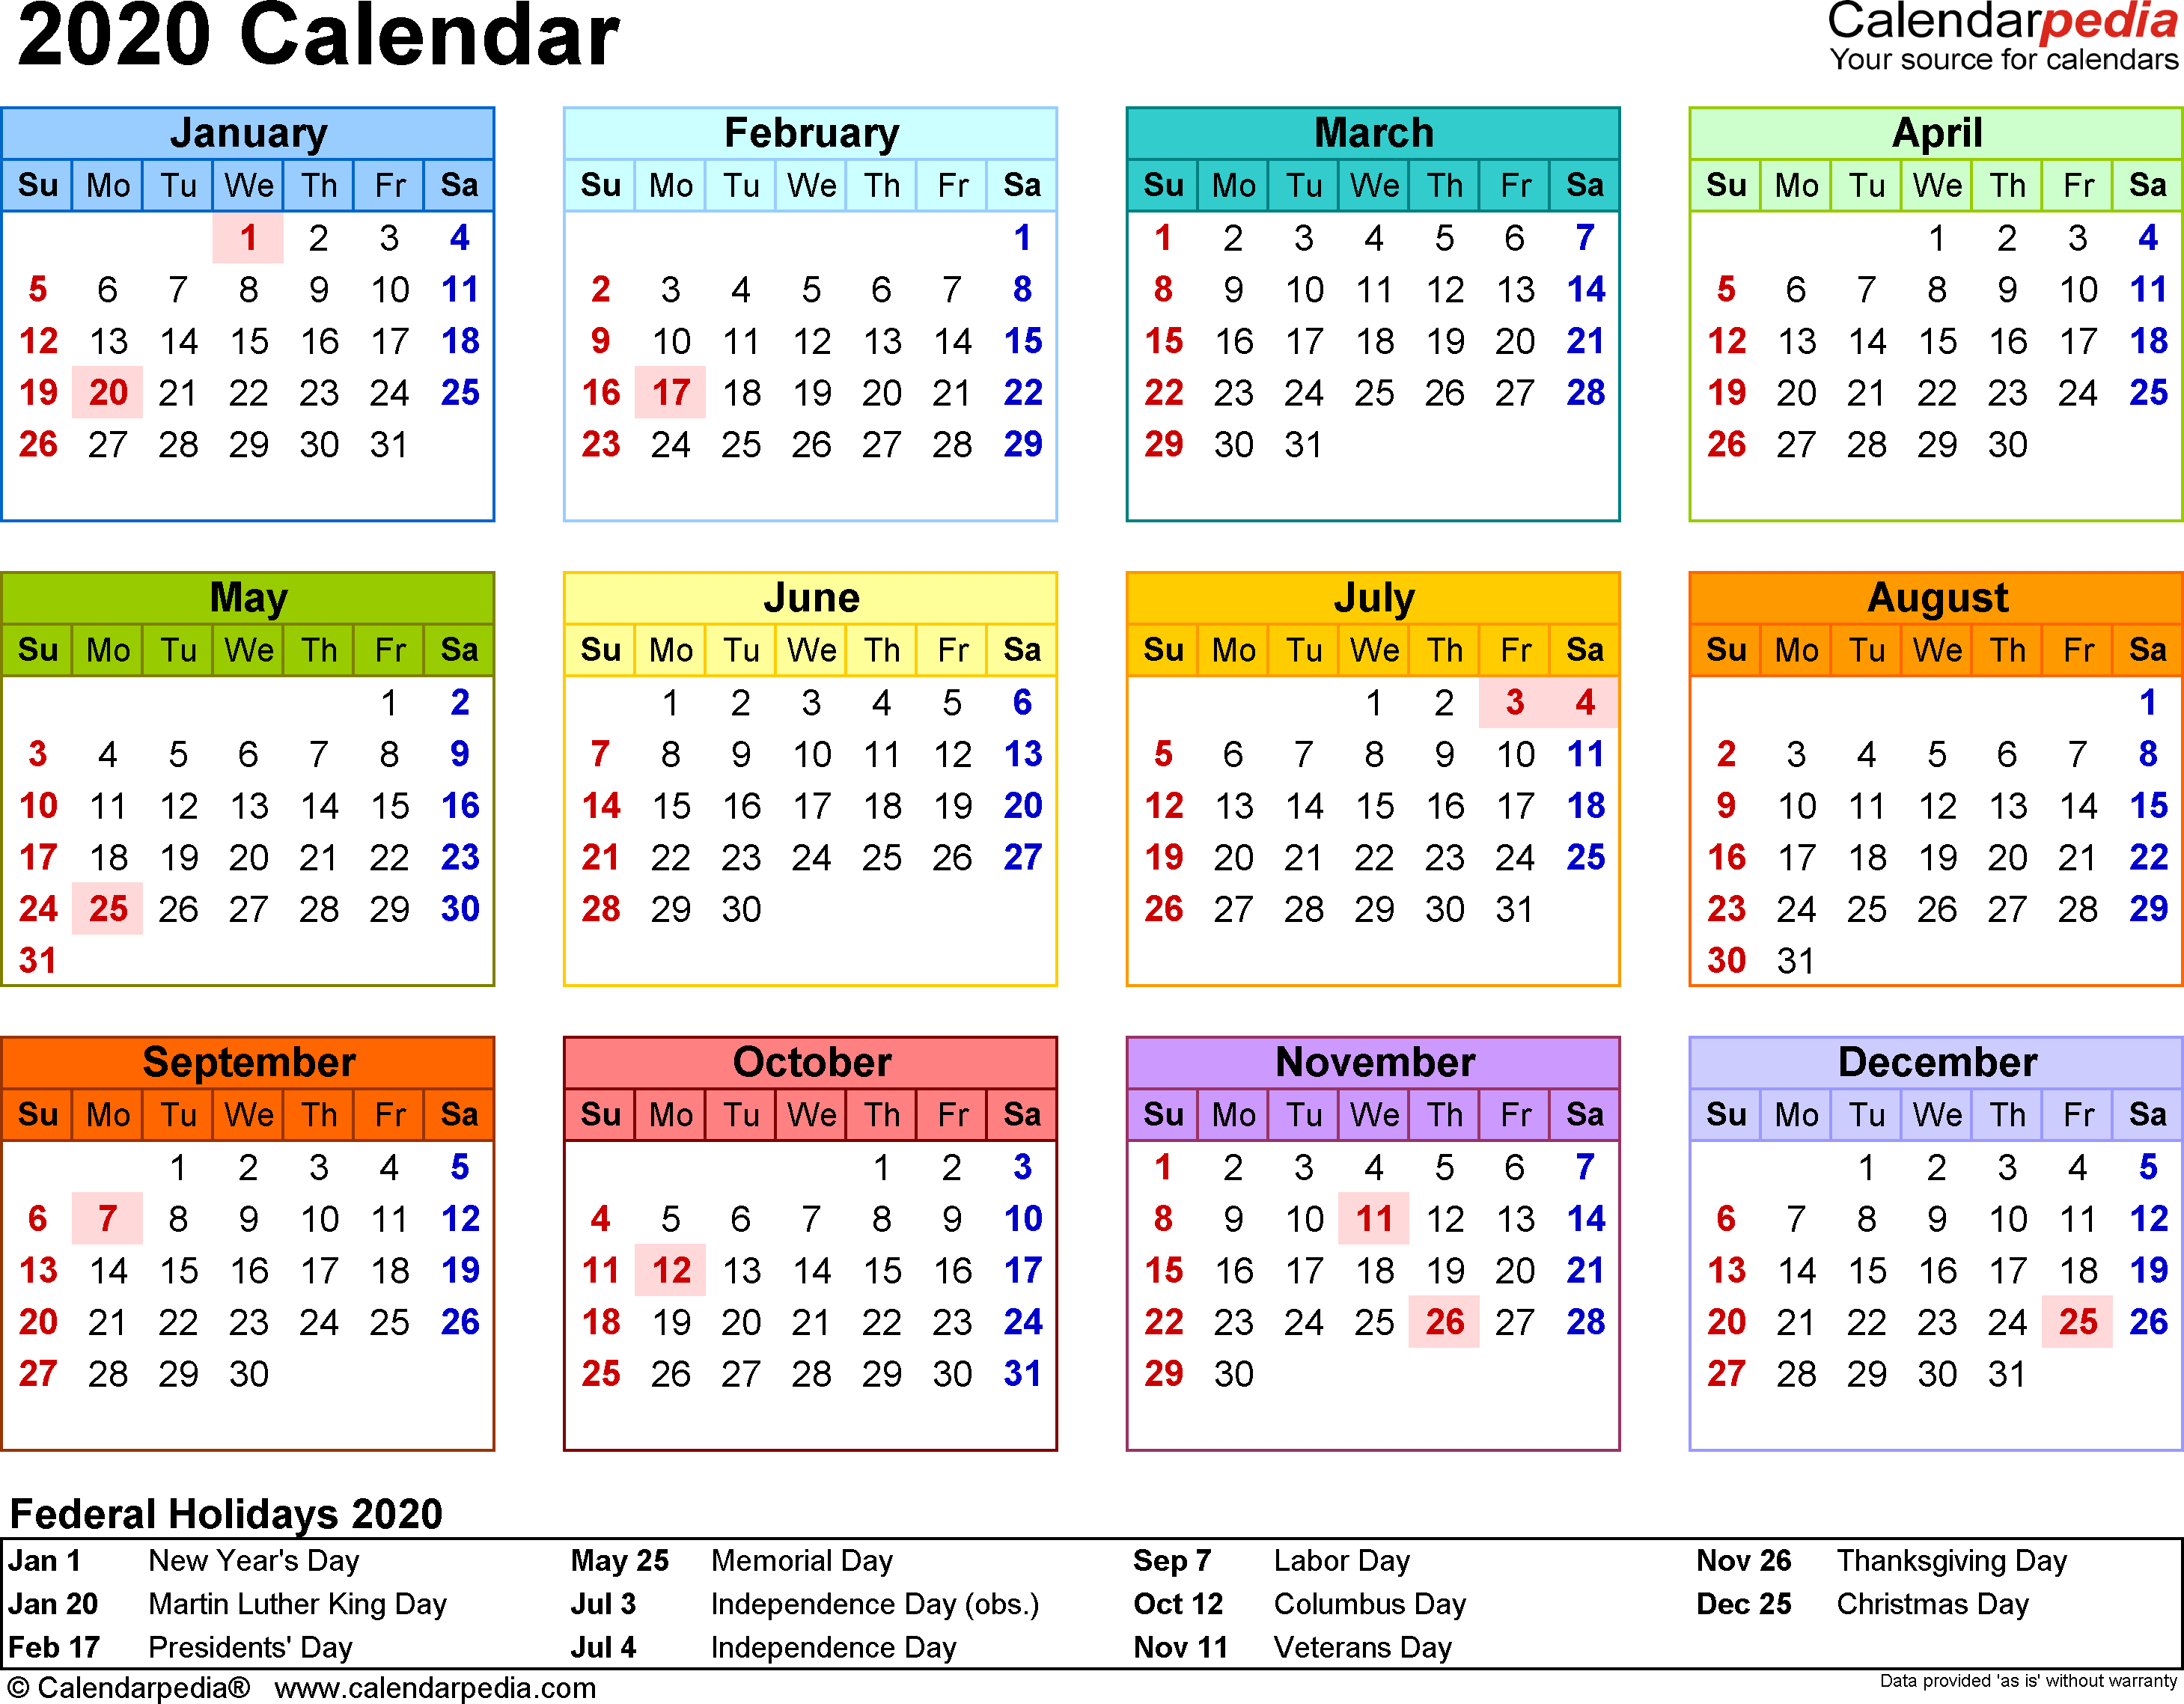 Free Calendar Template 2020 Excel  Yatay.horizonconsulting.co inside 2020 Excel Calendar Free